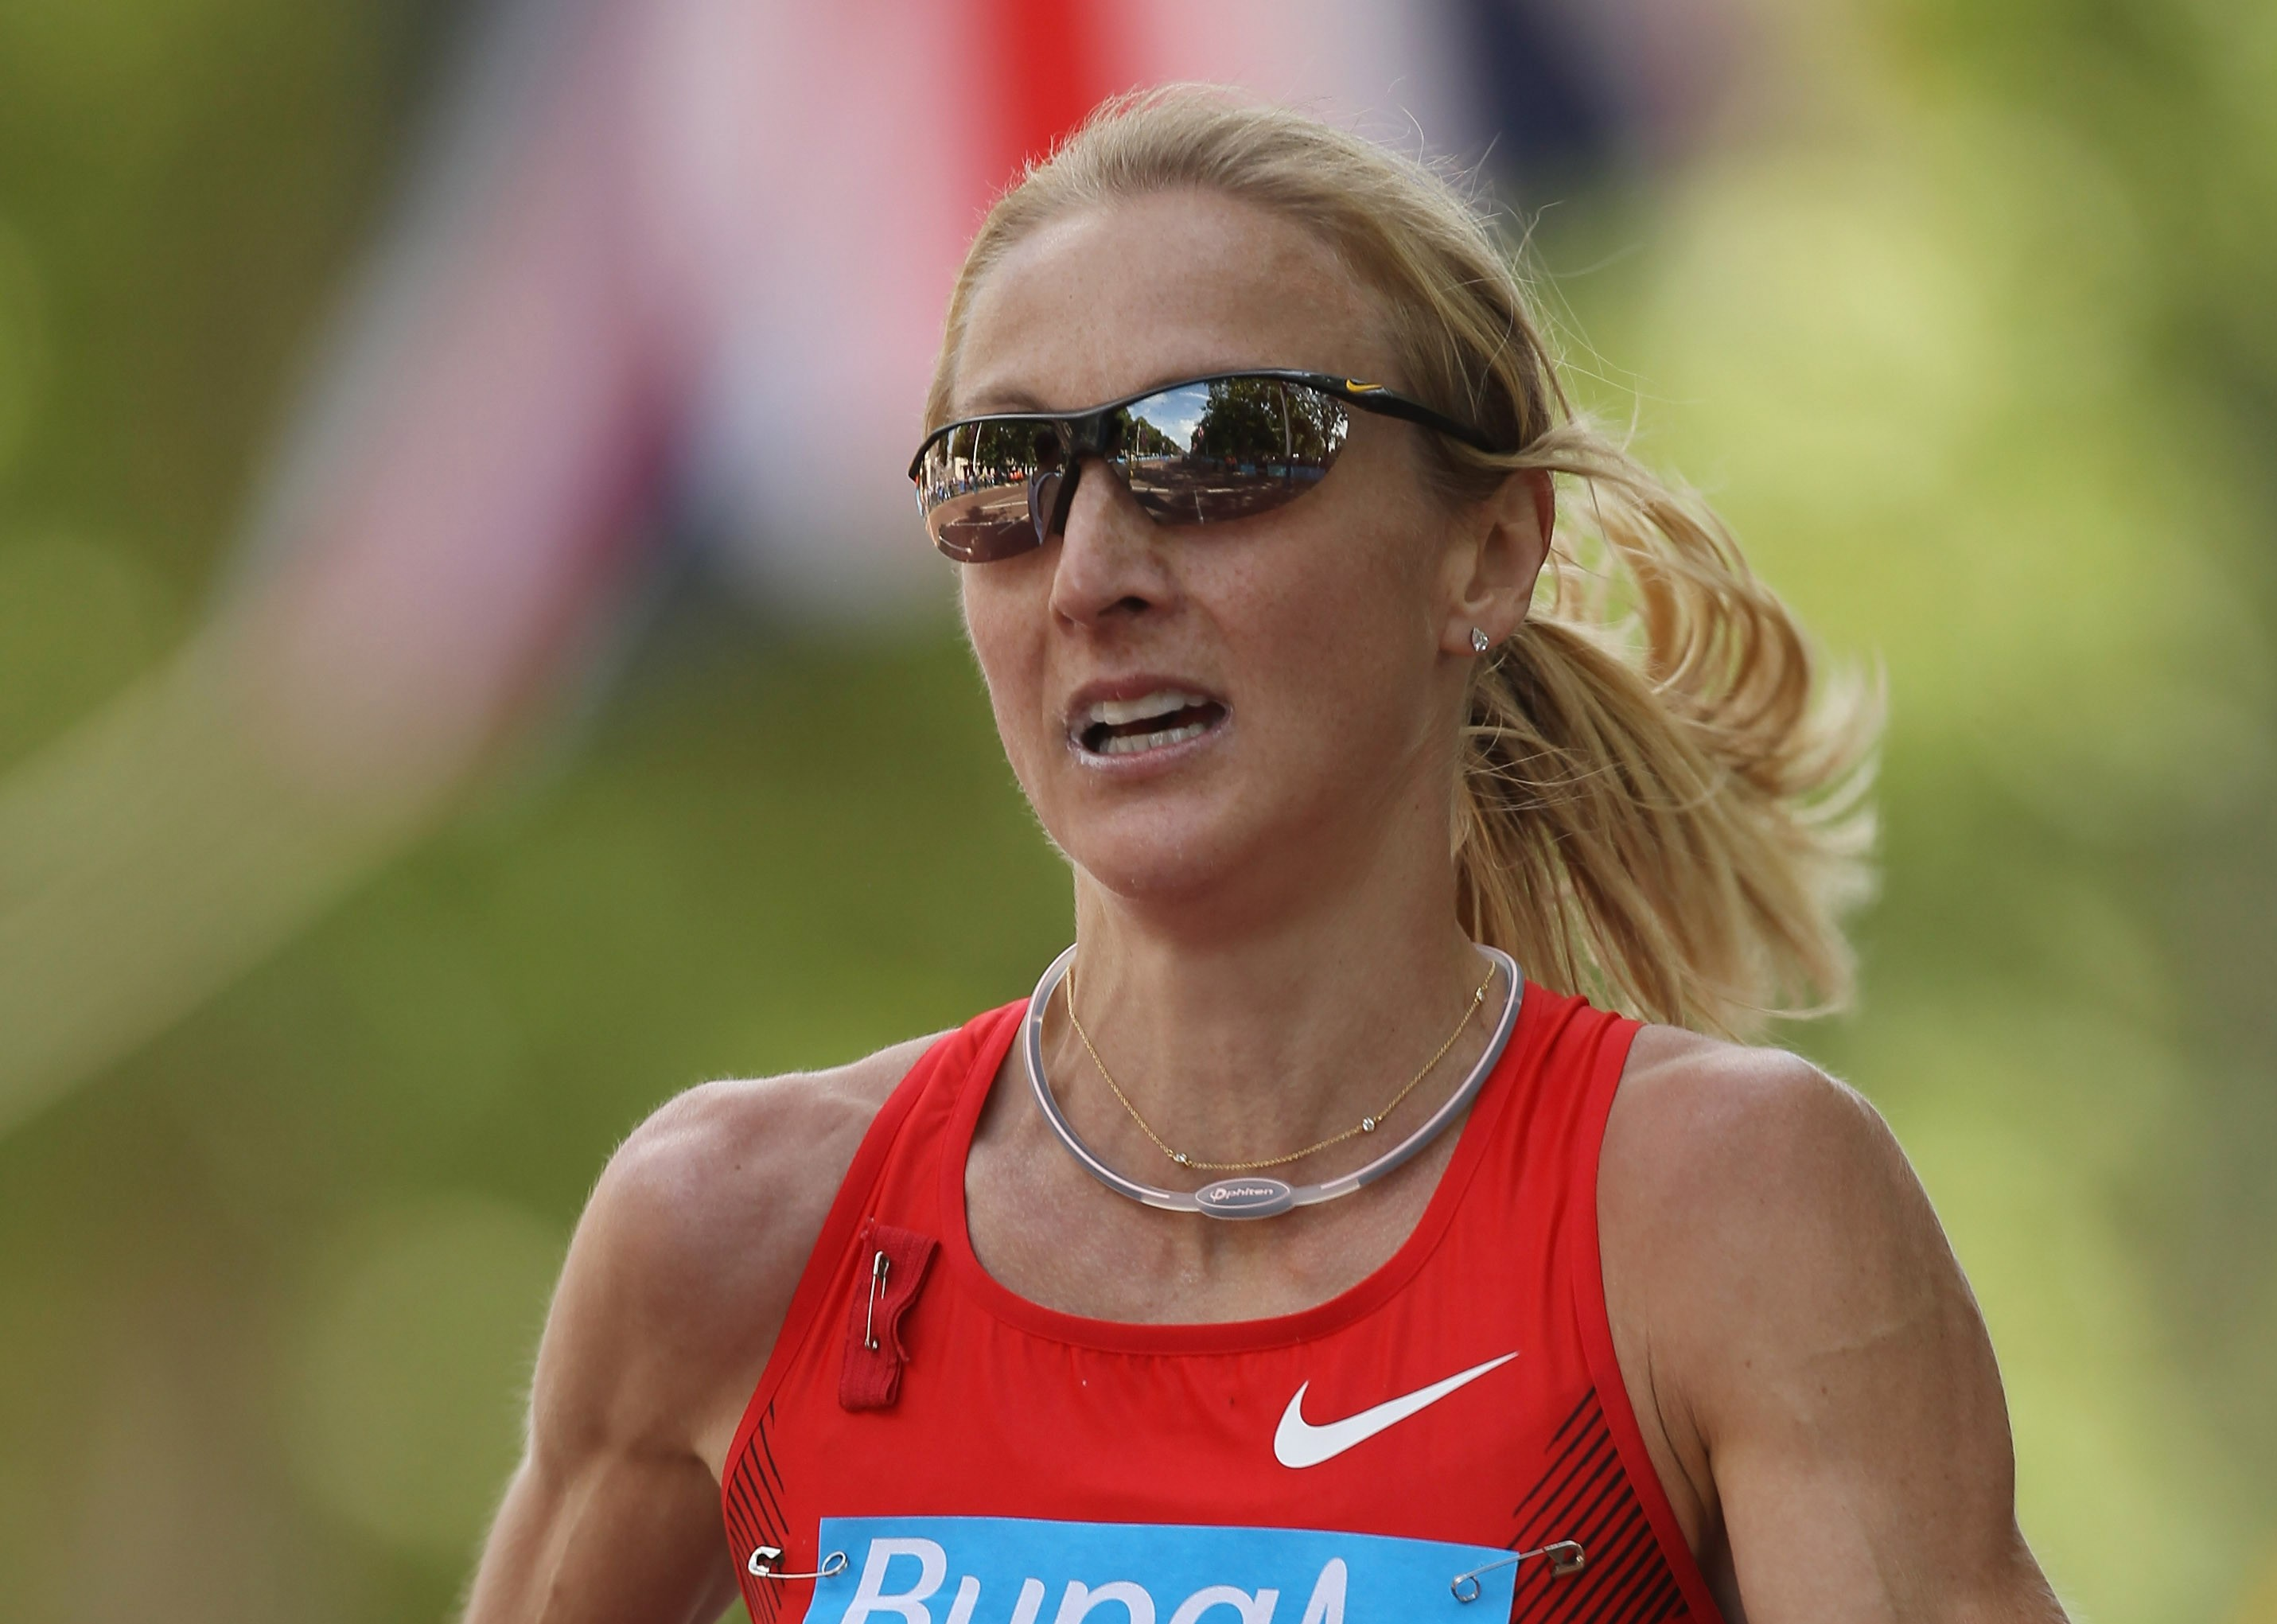 Paula Radcliffe admits her running career is over after failed foot surgery